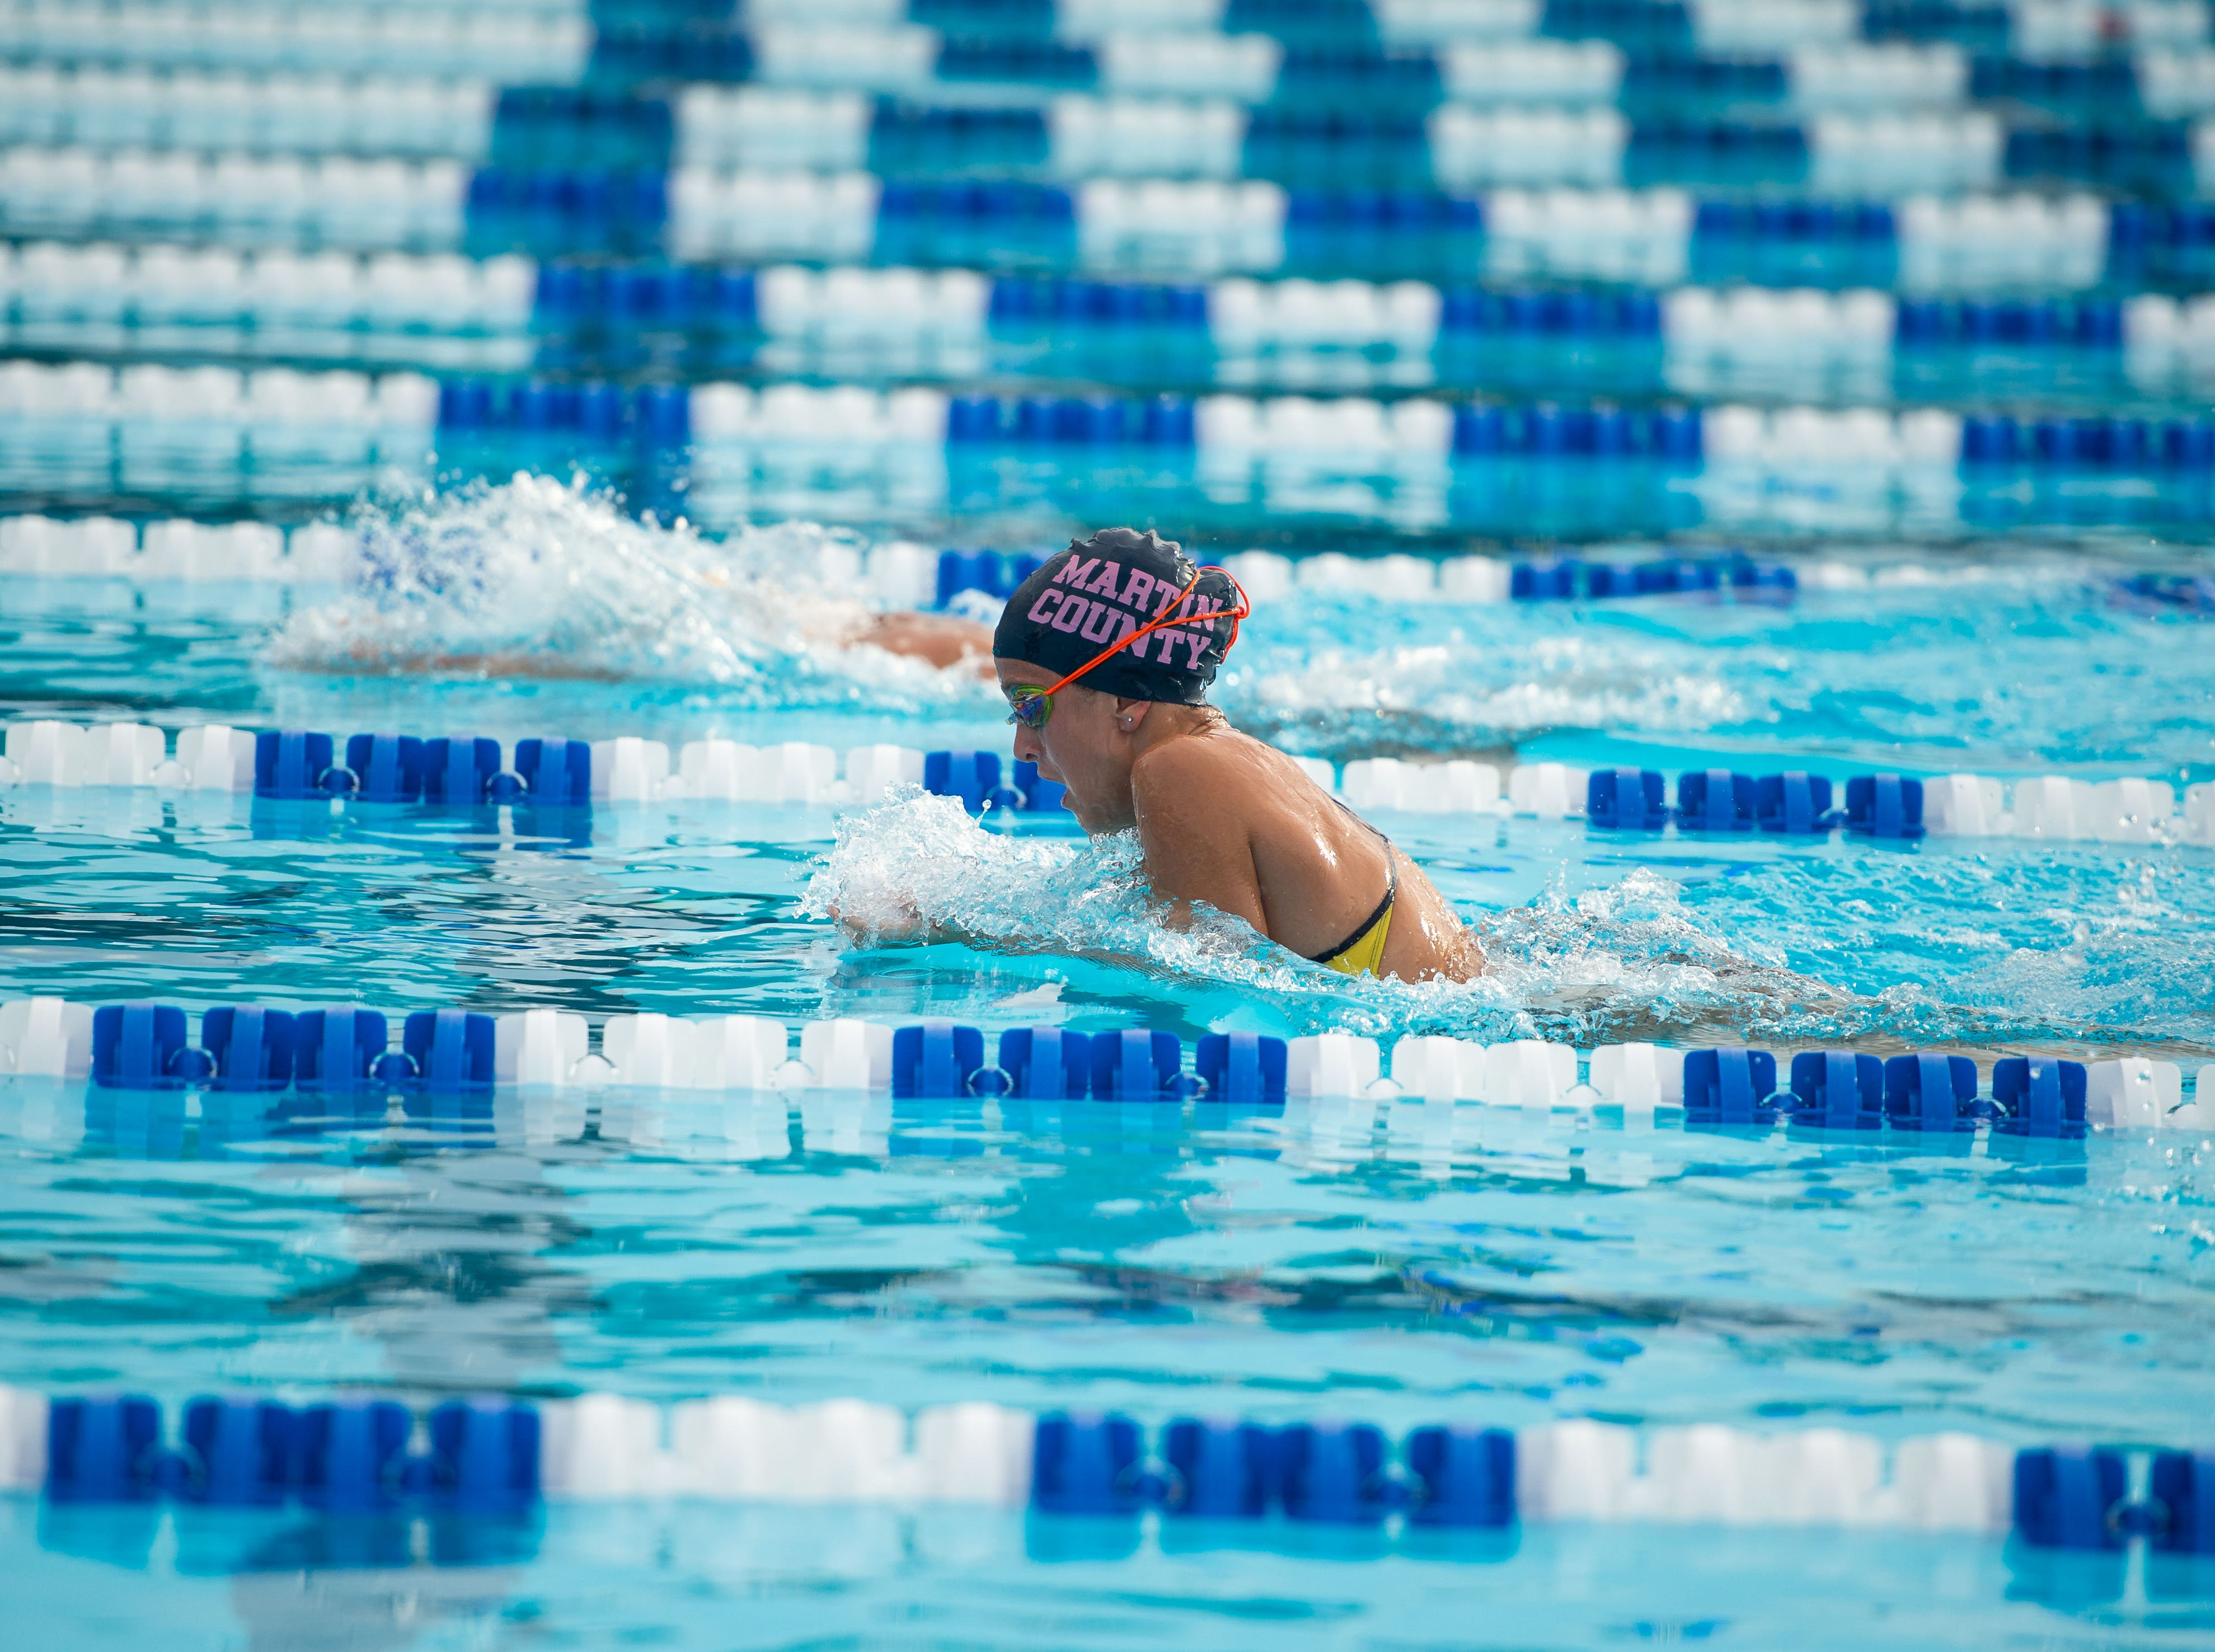 Martin County schools compete at the Martin County Championships high school swim and dive meet Thursday, Oct. 11, 2018, at Sailfish Splash in Stuart.